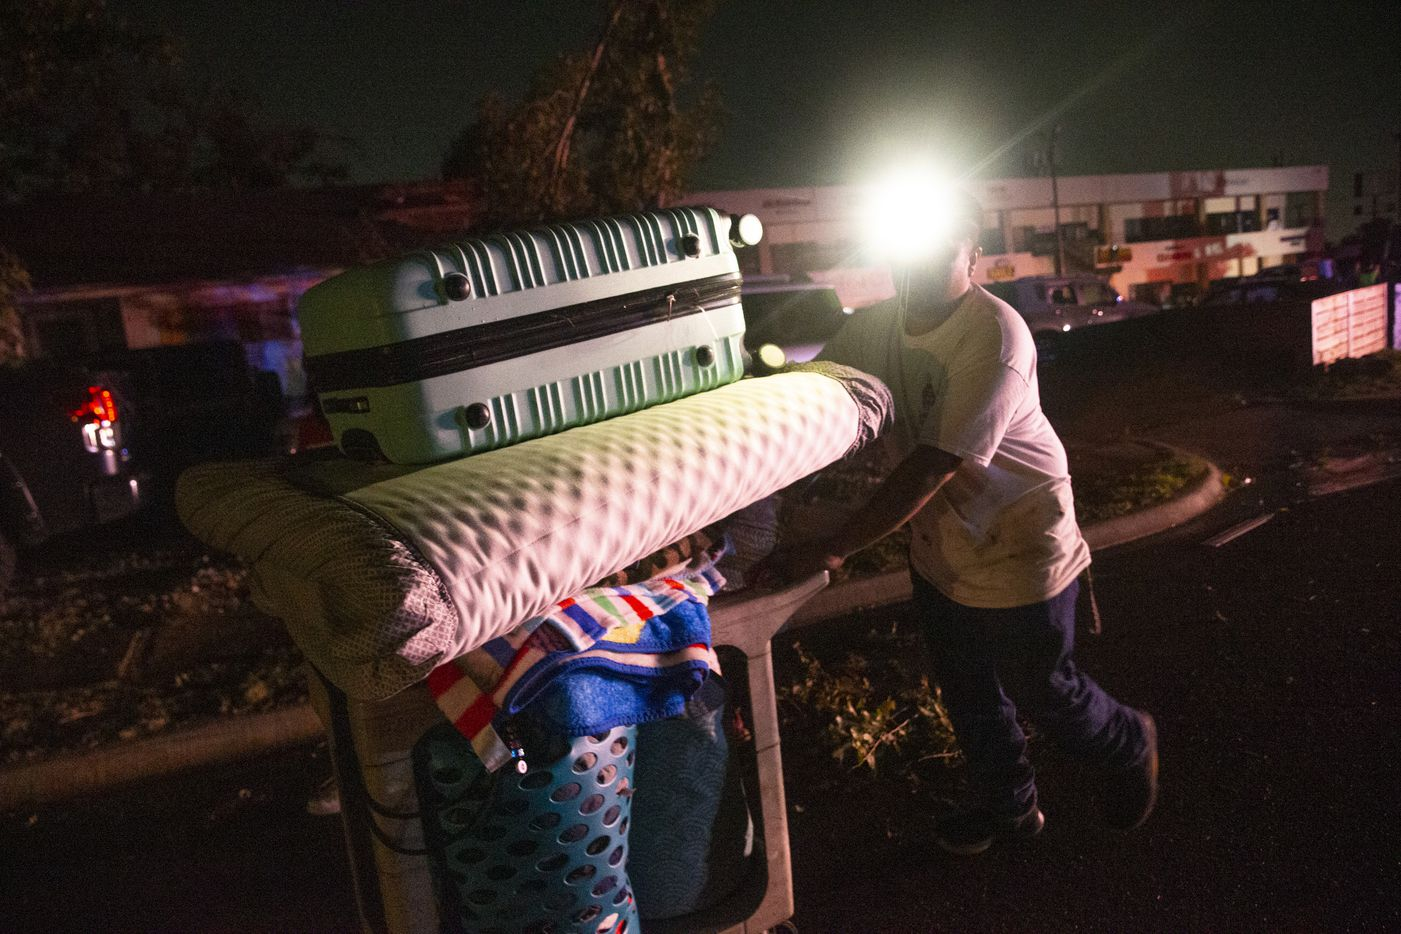 Antonio Gonzalez moves items from his home on Glenrio Lane, which sustained significant damage after a tornado hit parts of northern Dallas on Sunday, Oct. 20, 2019. Gonzalez said he planned to stay with in-laws in Oak Cliff.